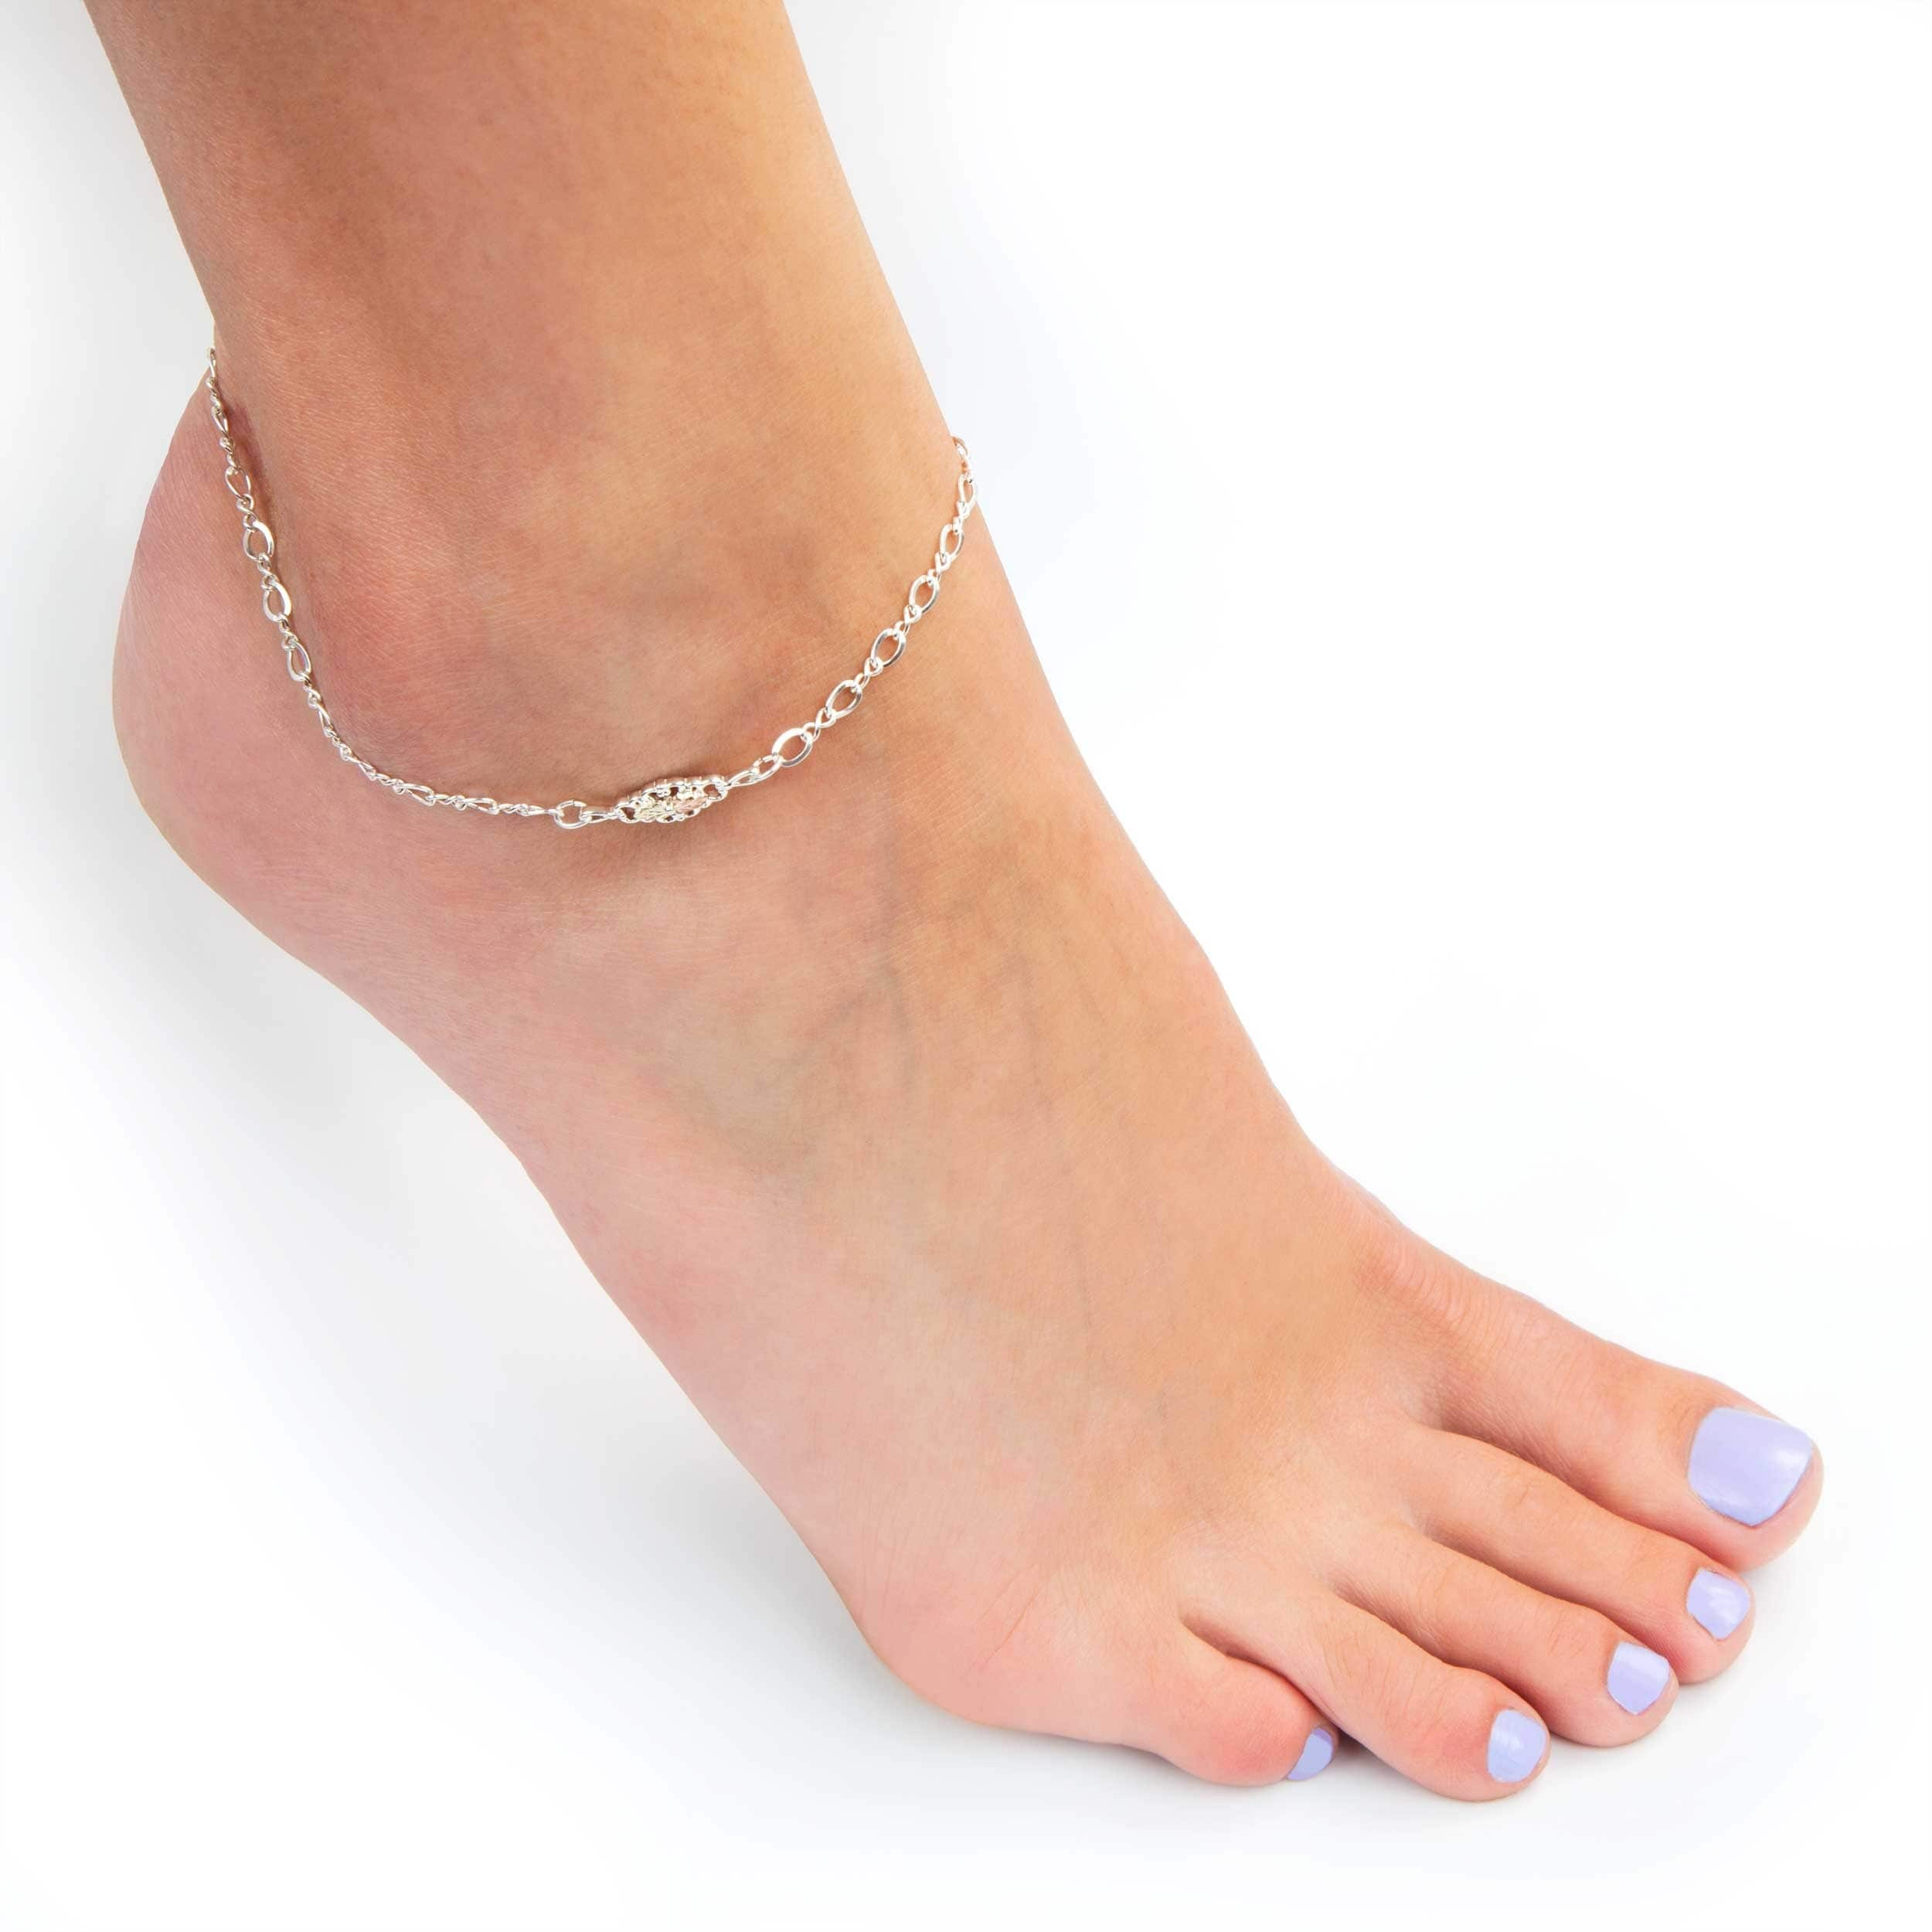 jewelry anklet silver picture of lovely bracelet heart ankle pink girl open sterling crystal wearing bling